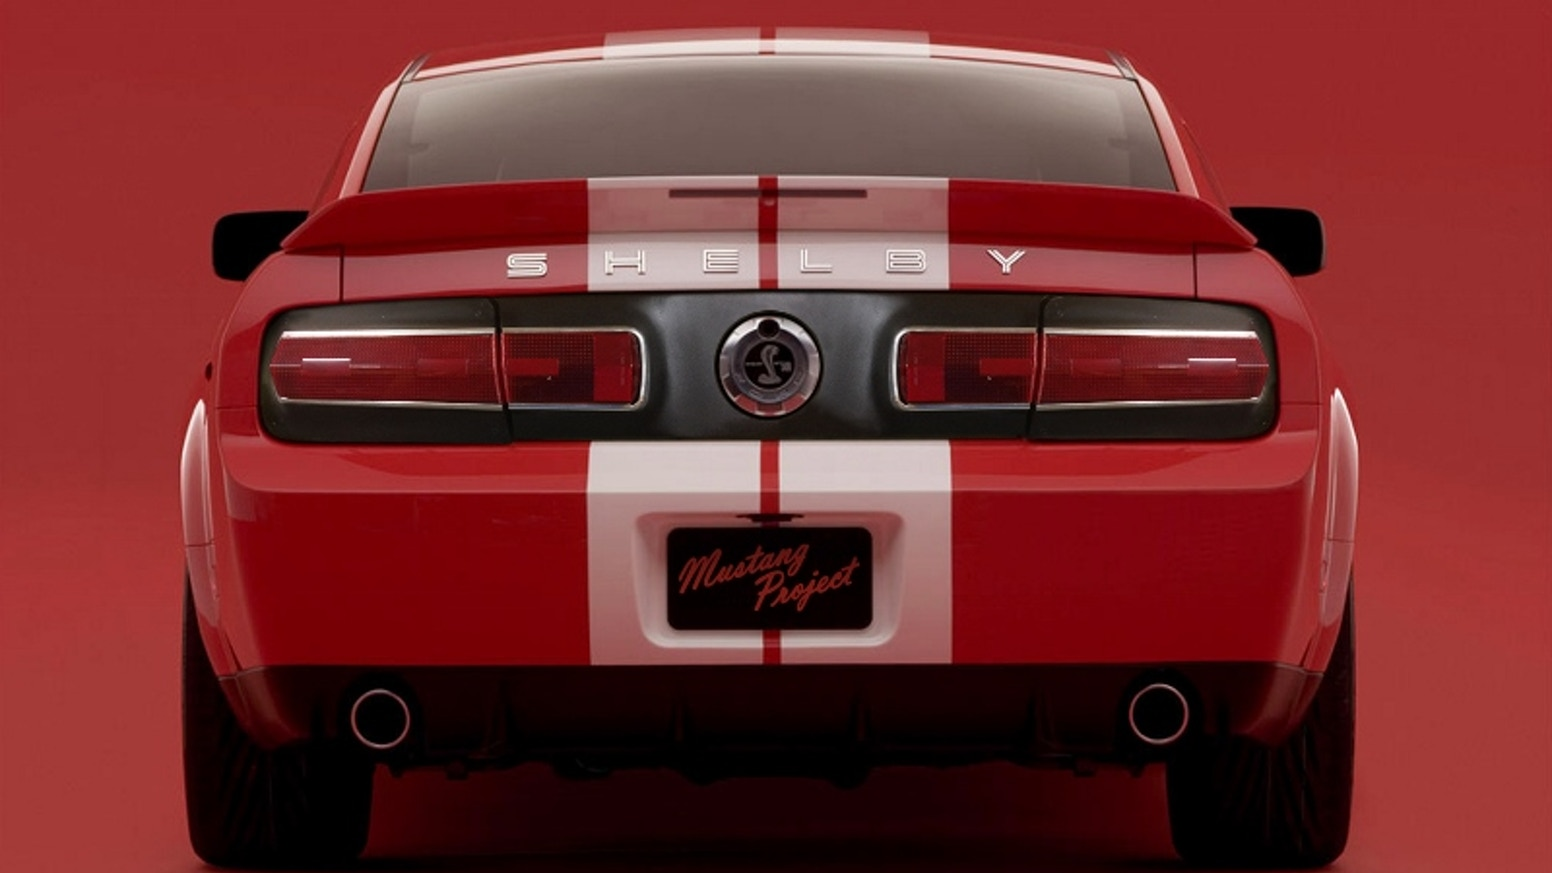 05 09 Mustang Shelby Tail Light Conversion Kit